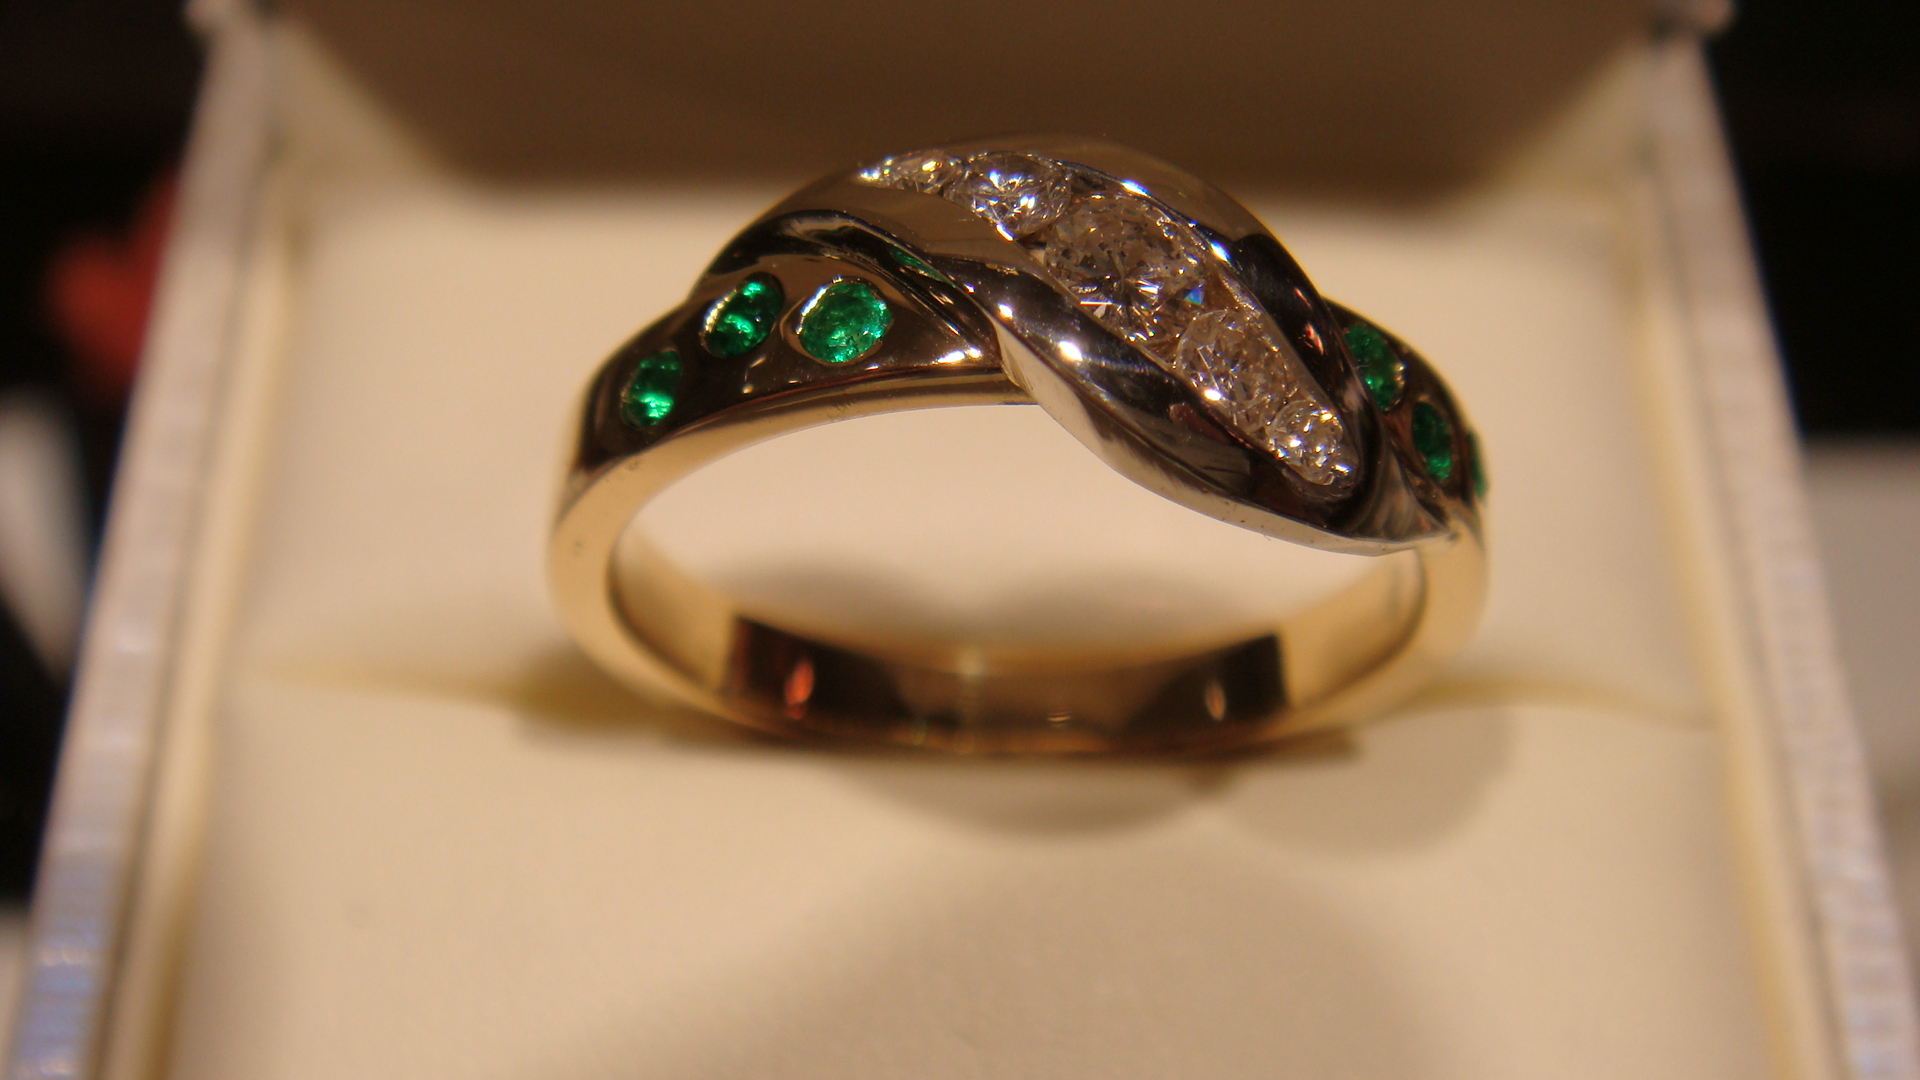 Diamonds with emeralds in 14kw